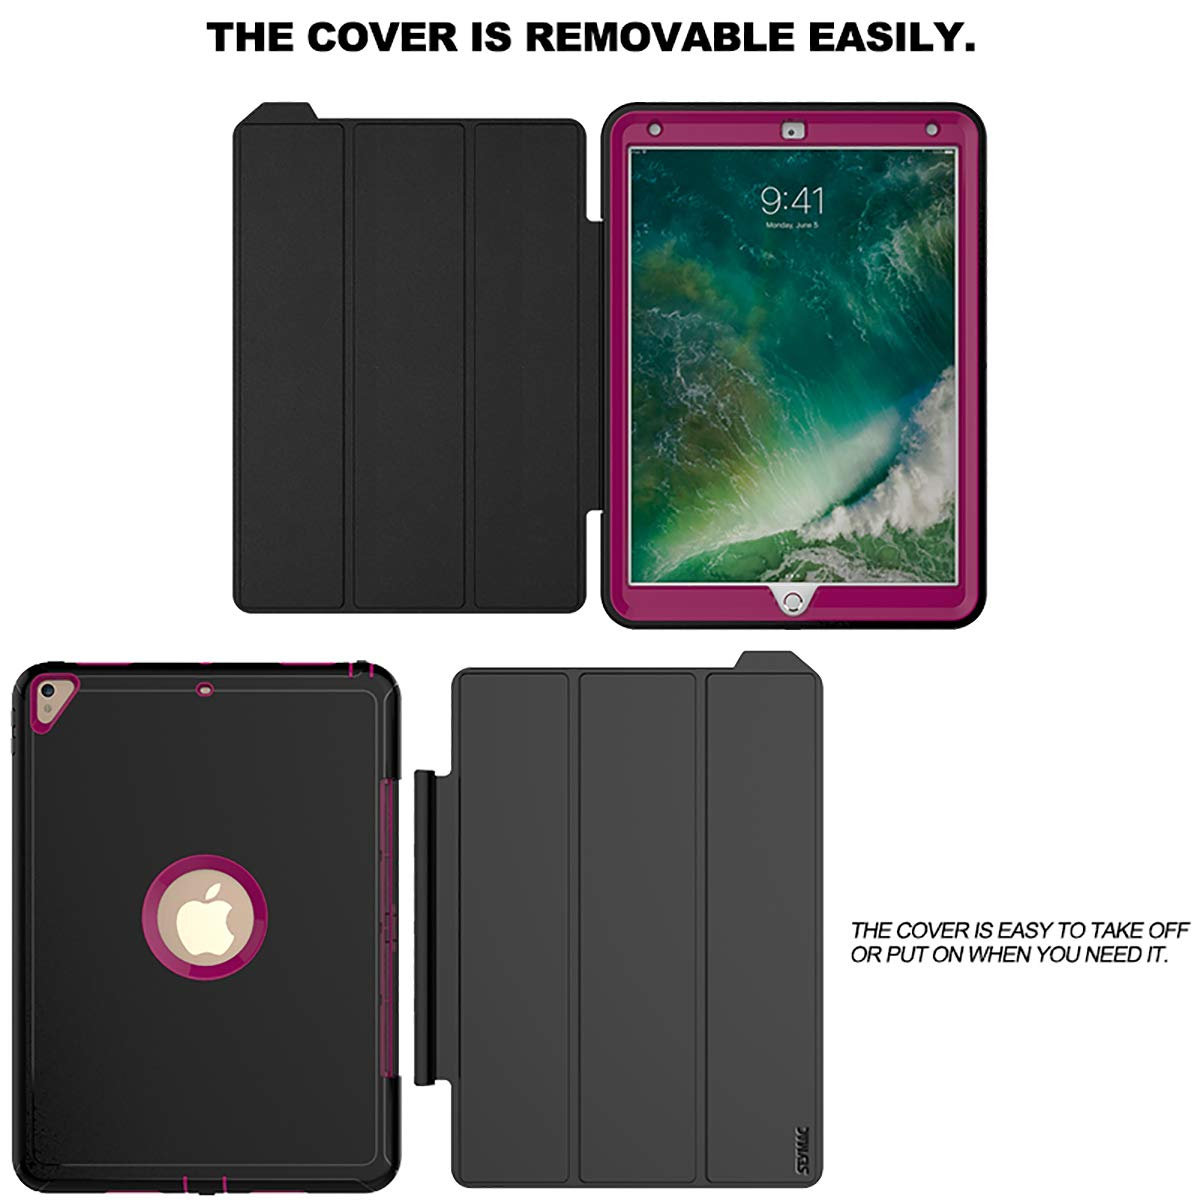 SEYMAC iPad Pro 10.5 Case, Three Layer Drop Protection Rugged Protective Heavy Duty Folio Stand Case with Magnetic Smart Auto Wake/Sleep Cover Compatible with iPad Pro 10.5 [A1701, A1709]-Black/Rose